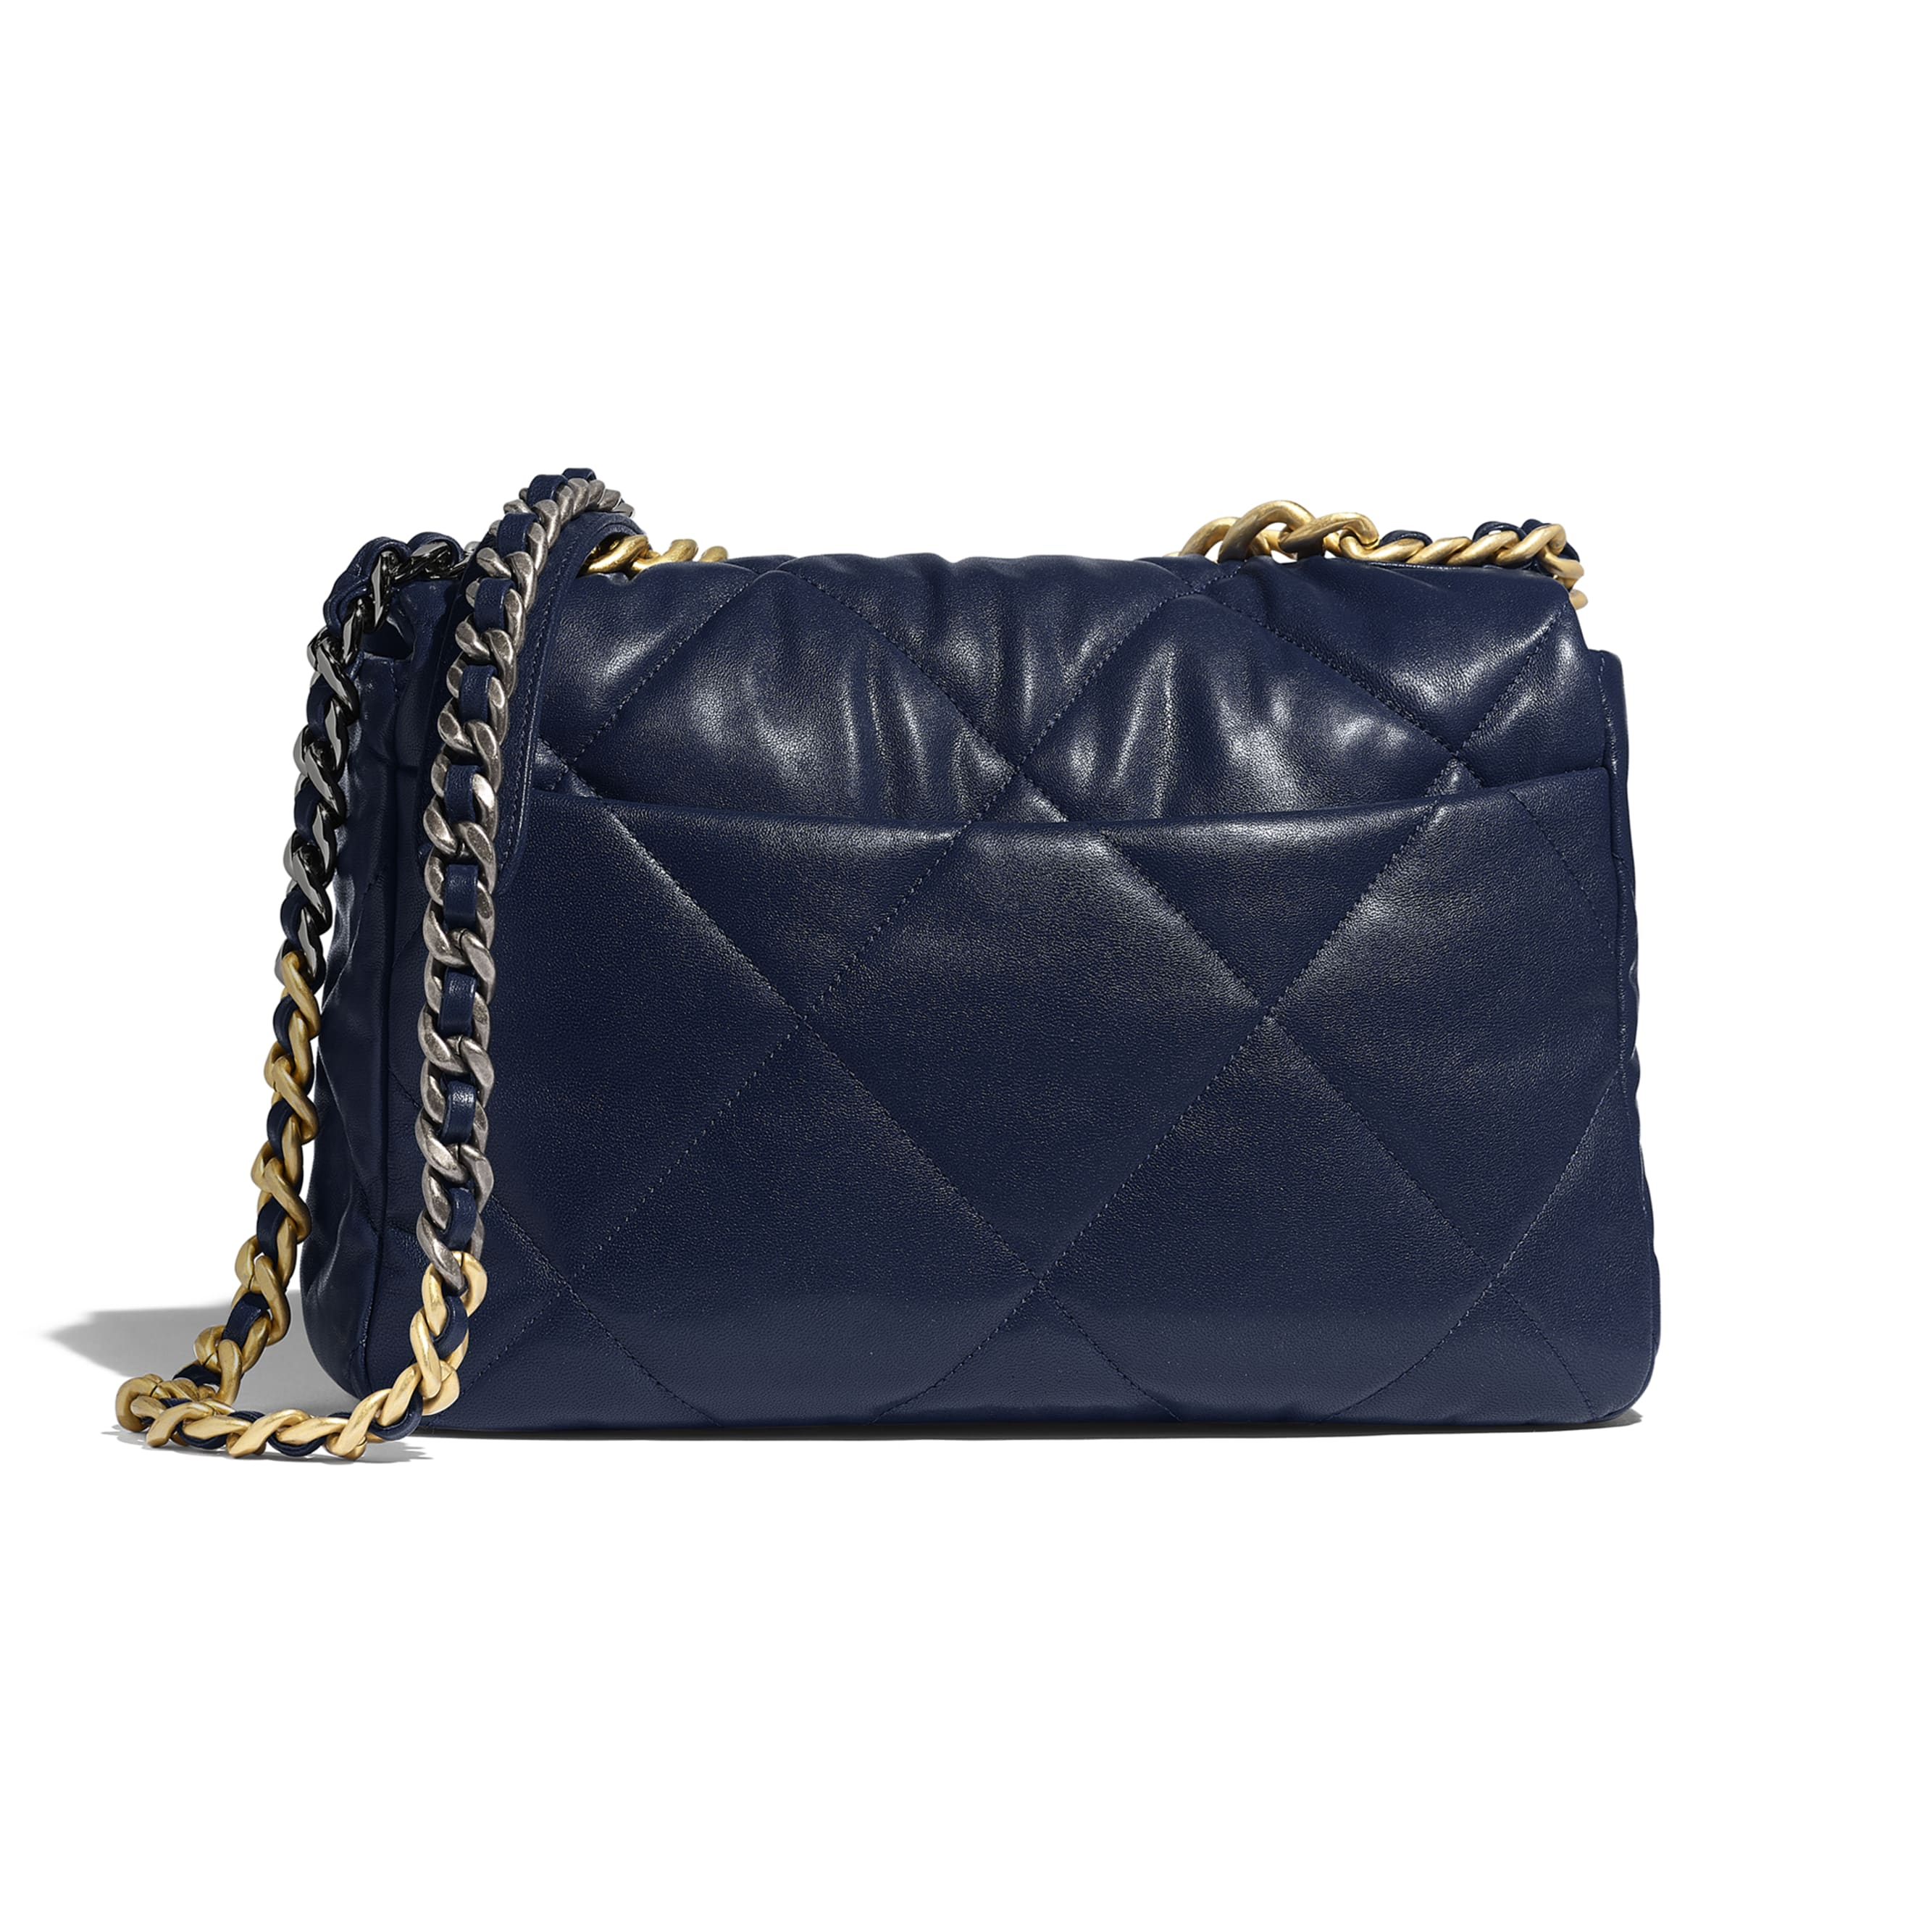 CHANEL 19 Large Flap Bag - Navy Blue - Lambskin, Gold-Tone, Silver-Tone & Ruthenium-Finish Metal - Alternative view - see standard sized version